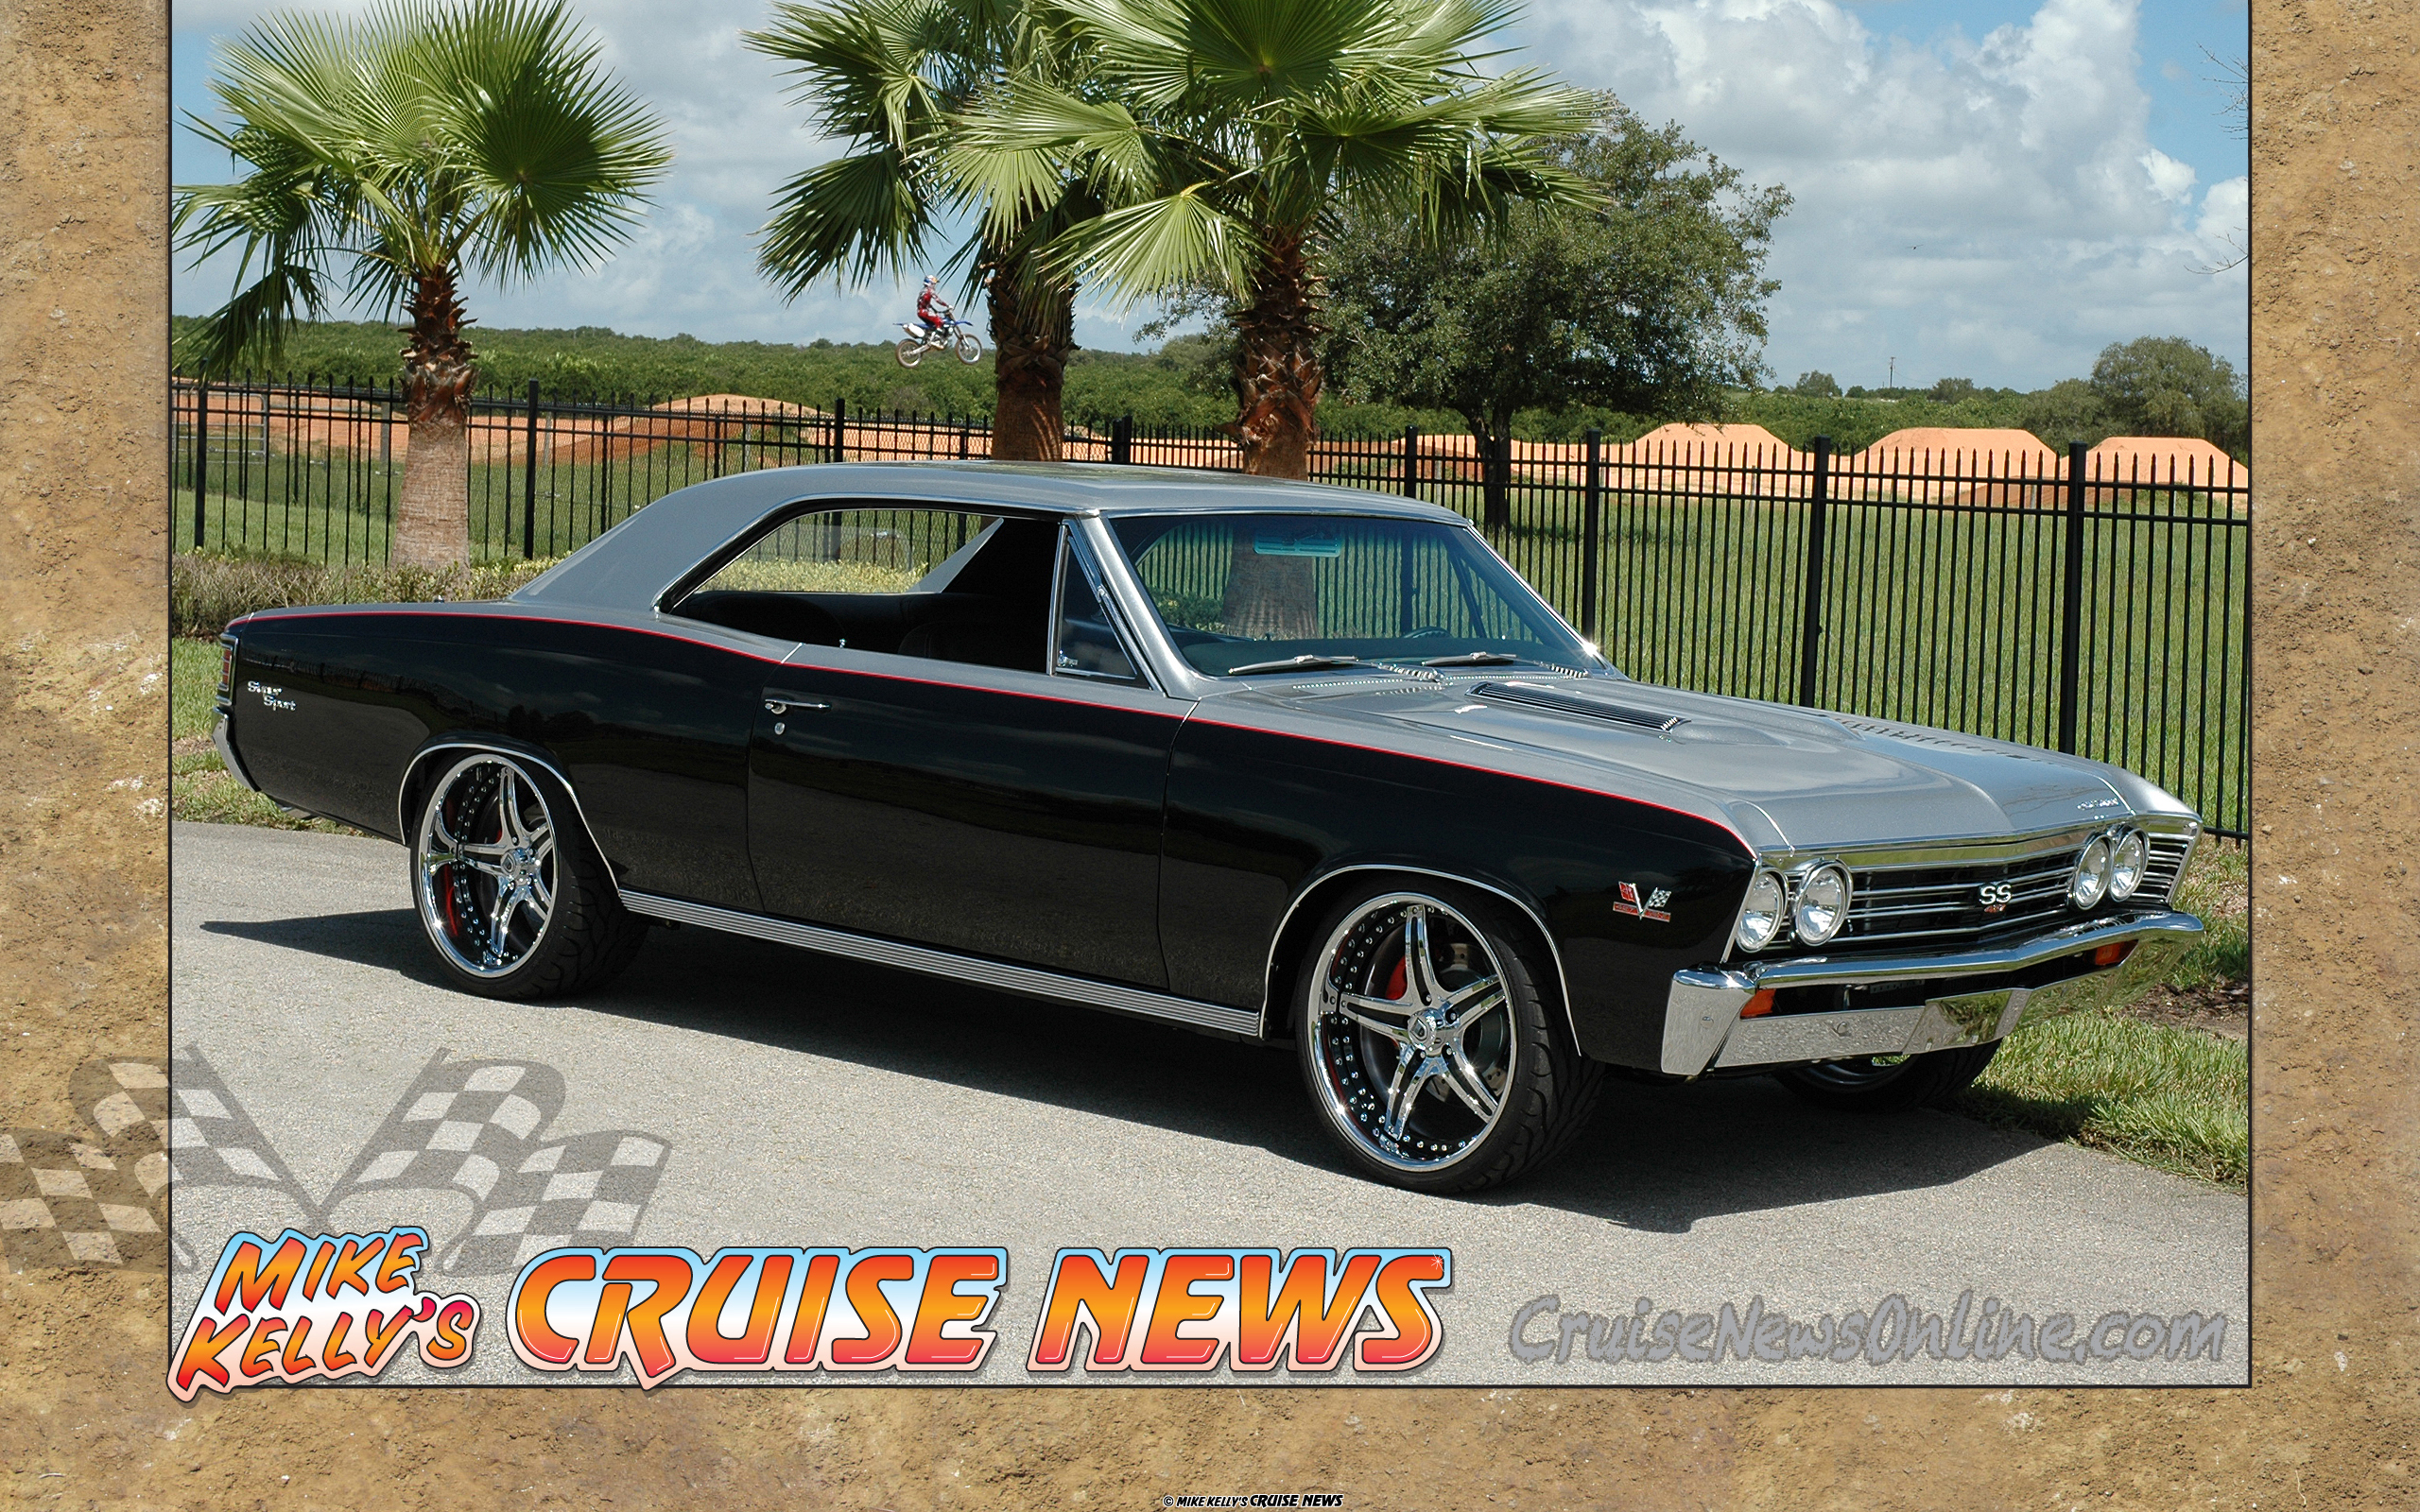 Special Items Mike Kellys Cruise News 1957 Chevy Impala Ss 1967 Chevelle Wallpaper